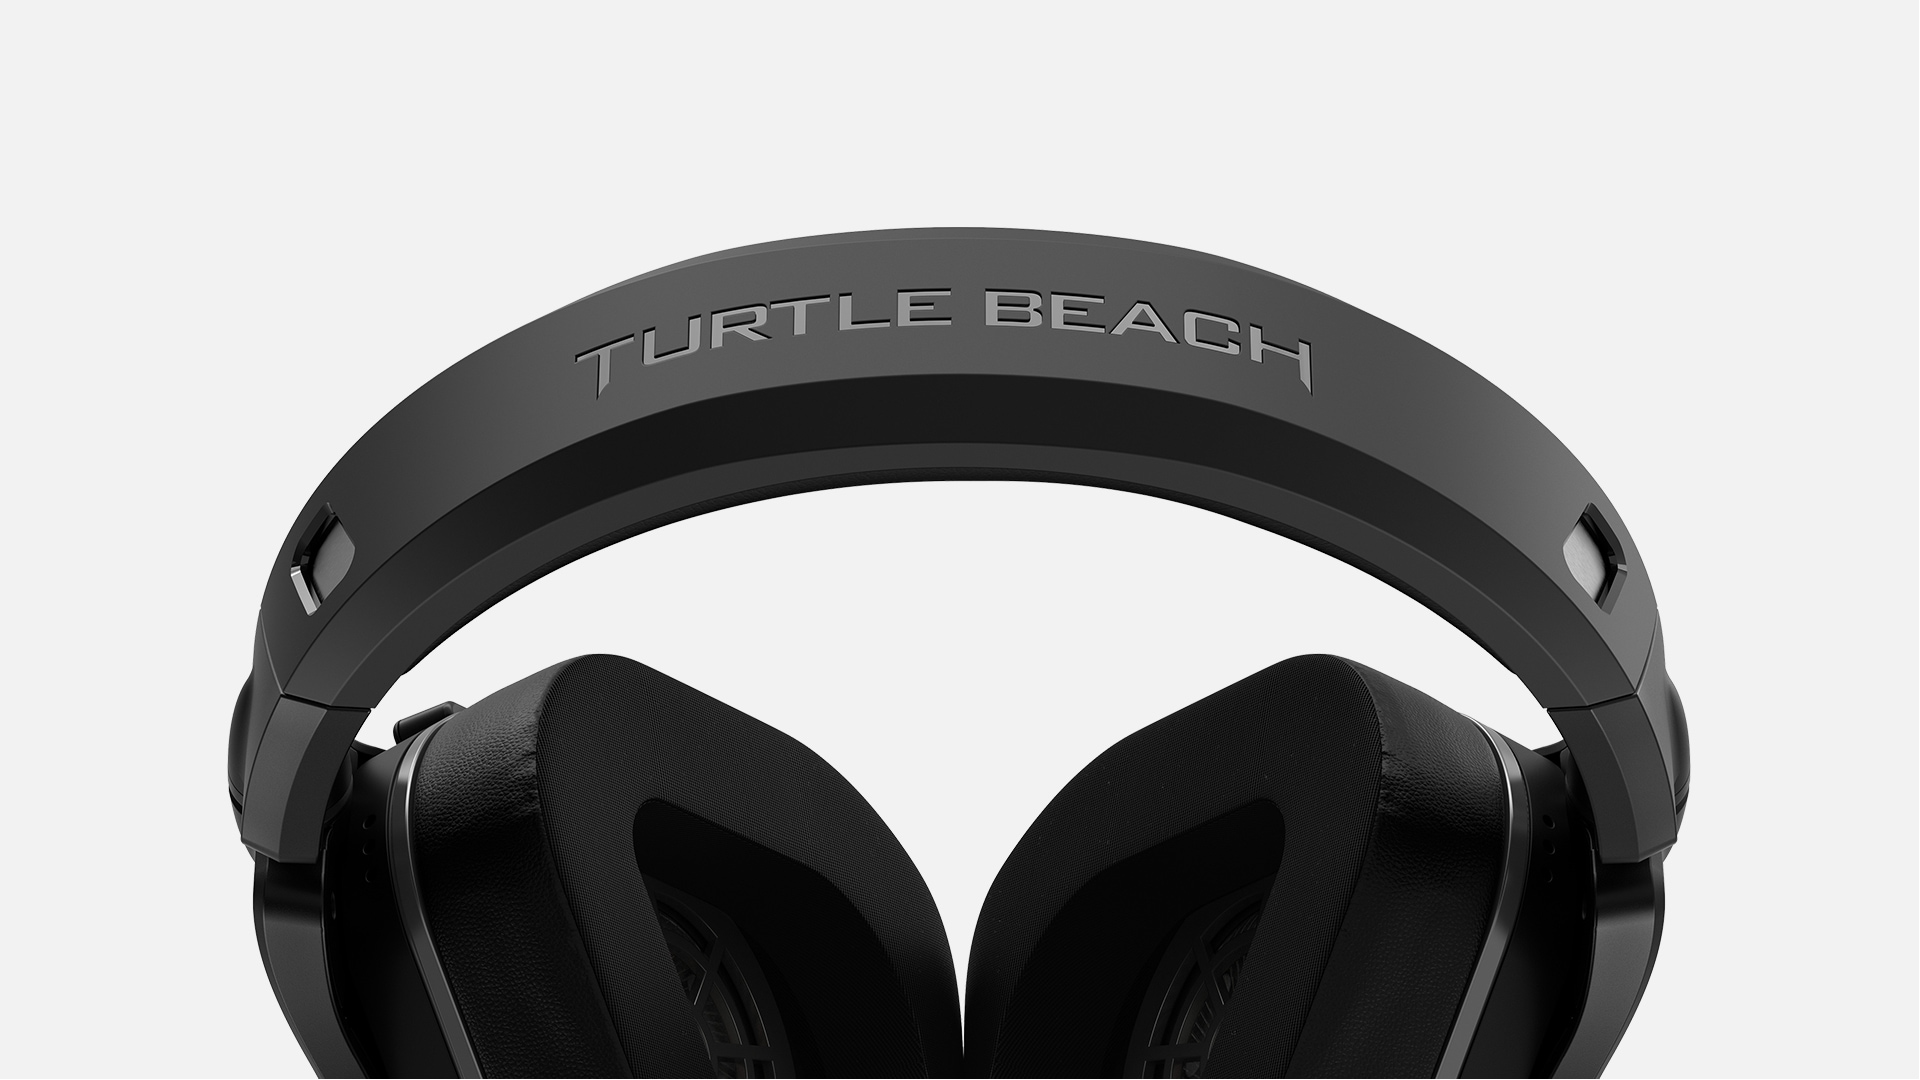 Turtle Beach Stealth 700 Gen 2 Premium Wireless Gaming Headset For Xbox One And Xbox Series X